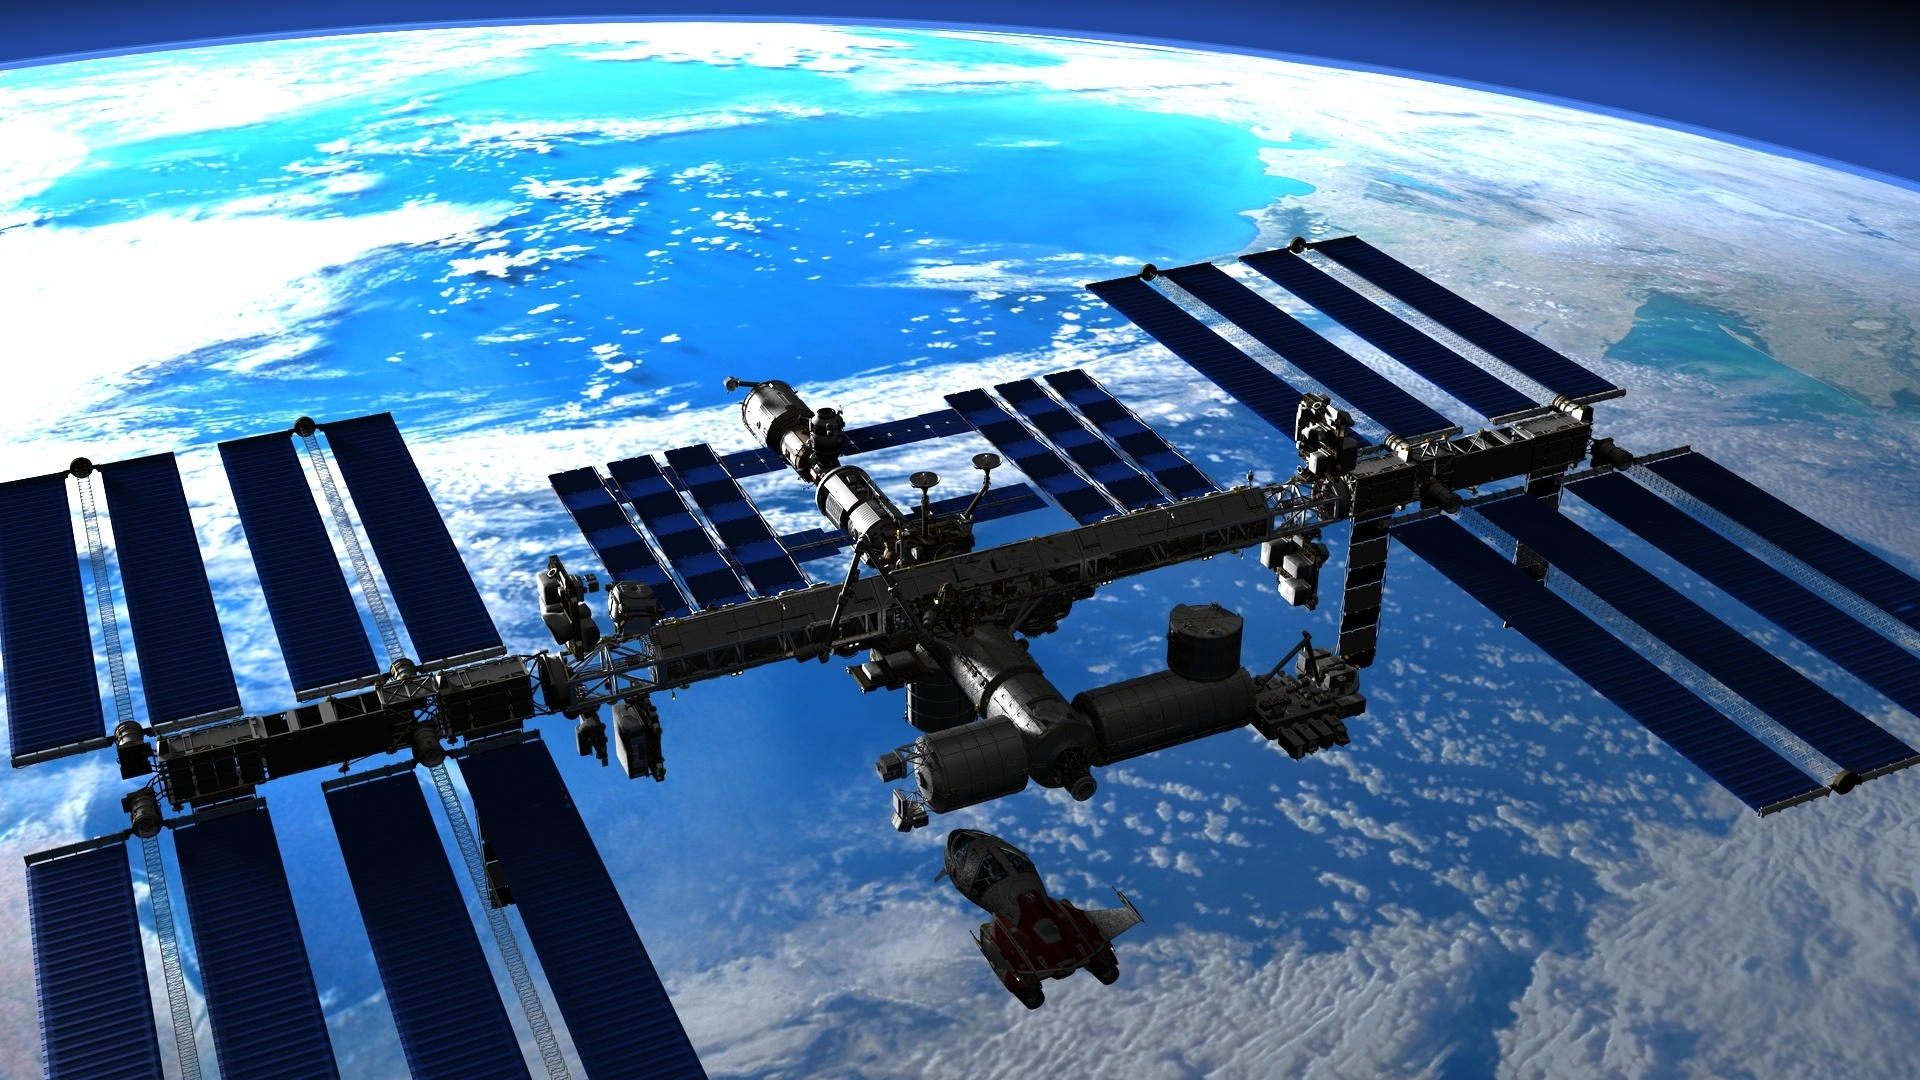 Space Station cool background